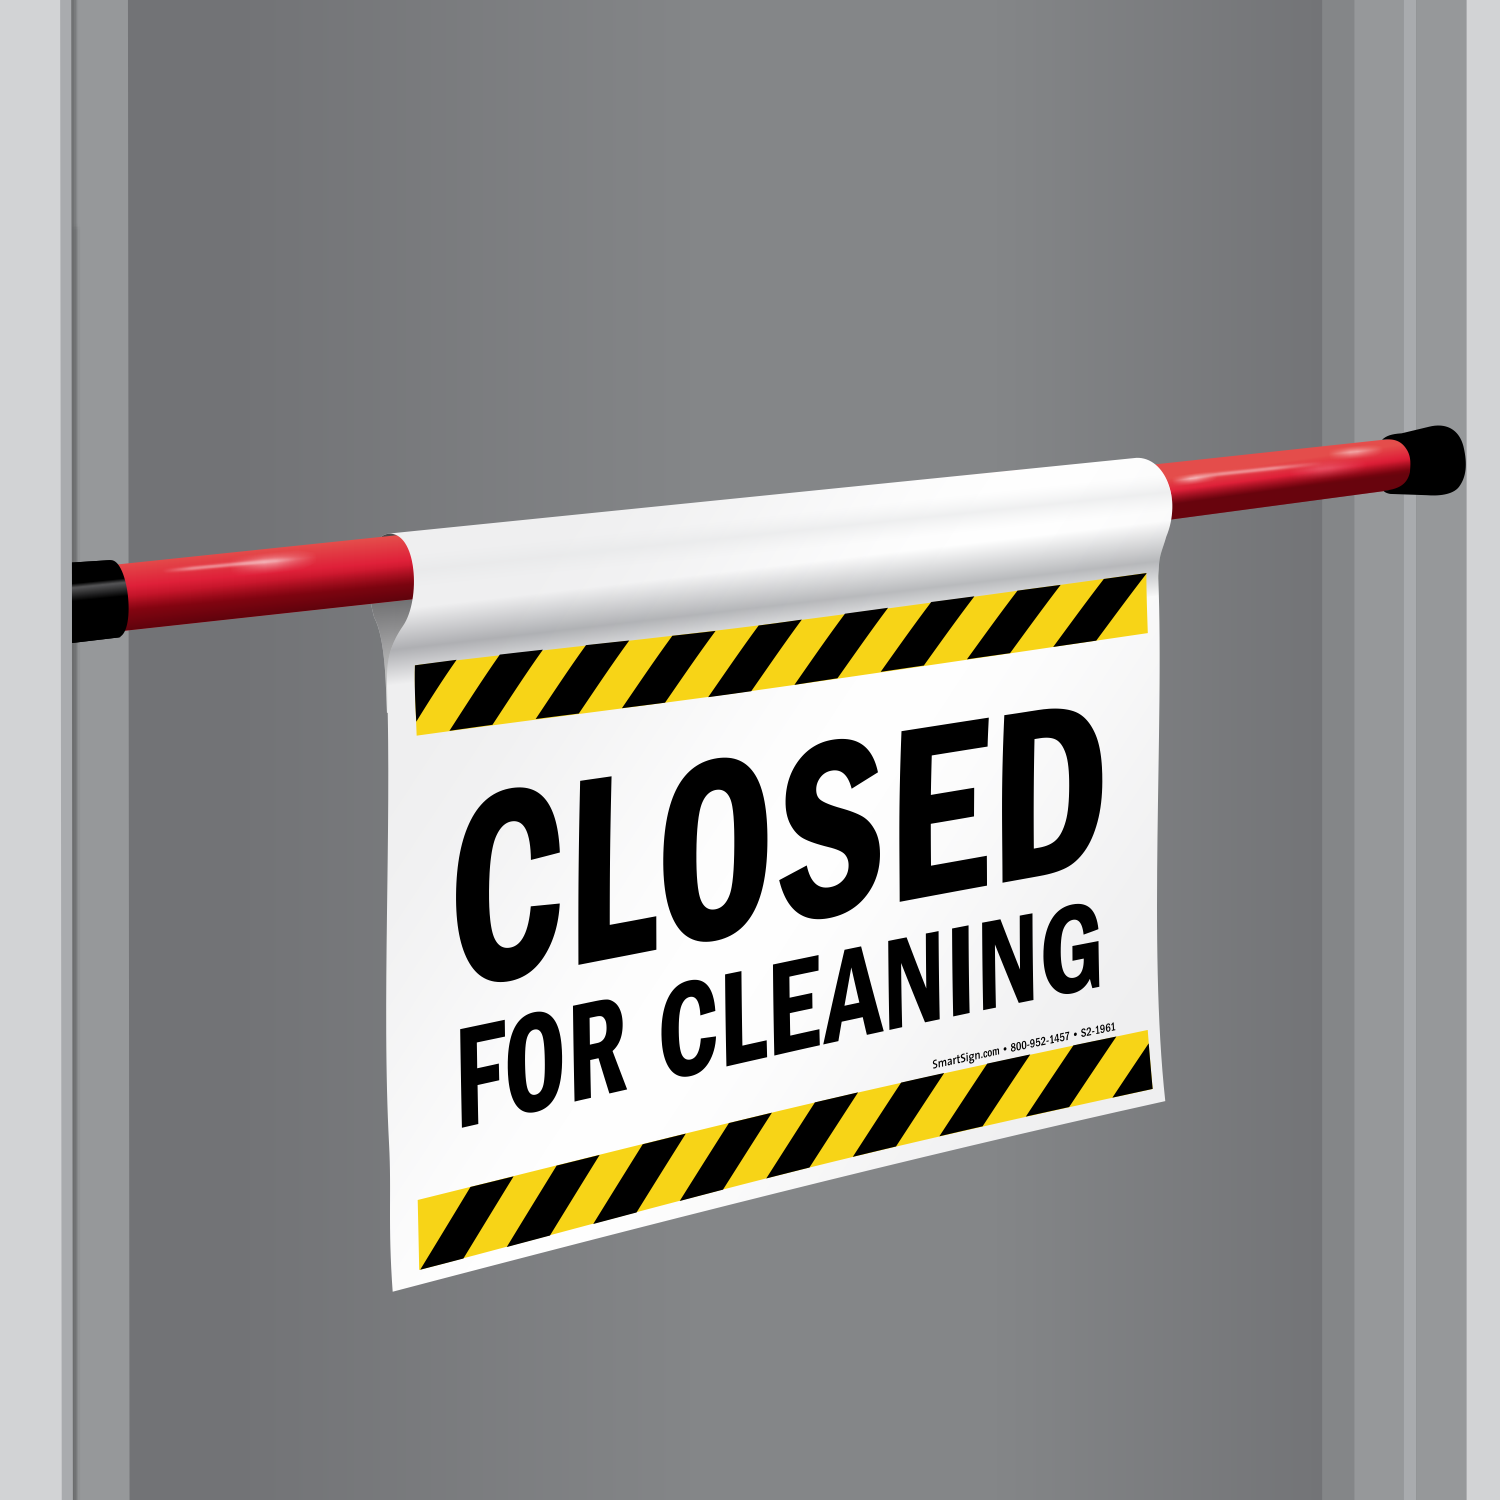 Closed For Cleaning Door Barricade Sign & Closed For Cleaning Door Barricade Sign SKU: S2-1961